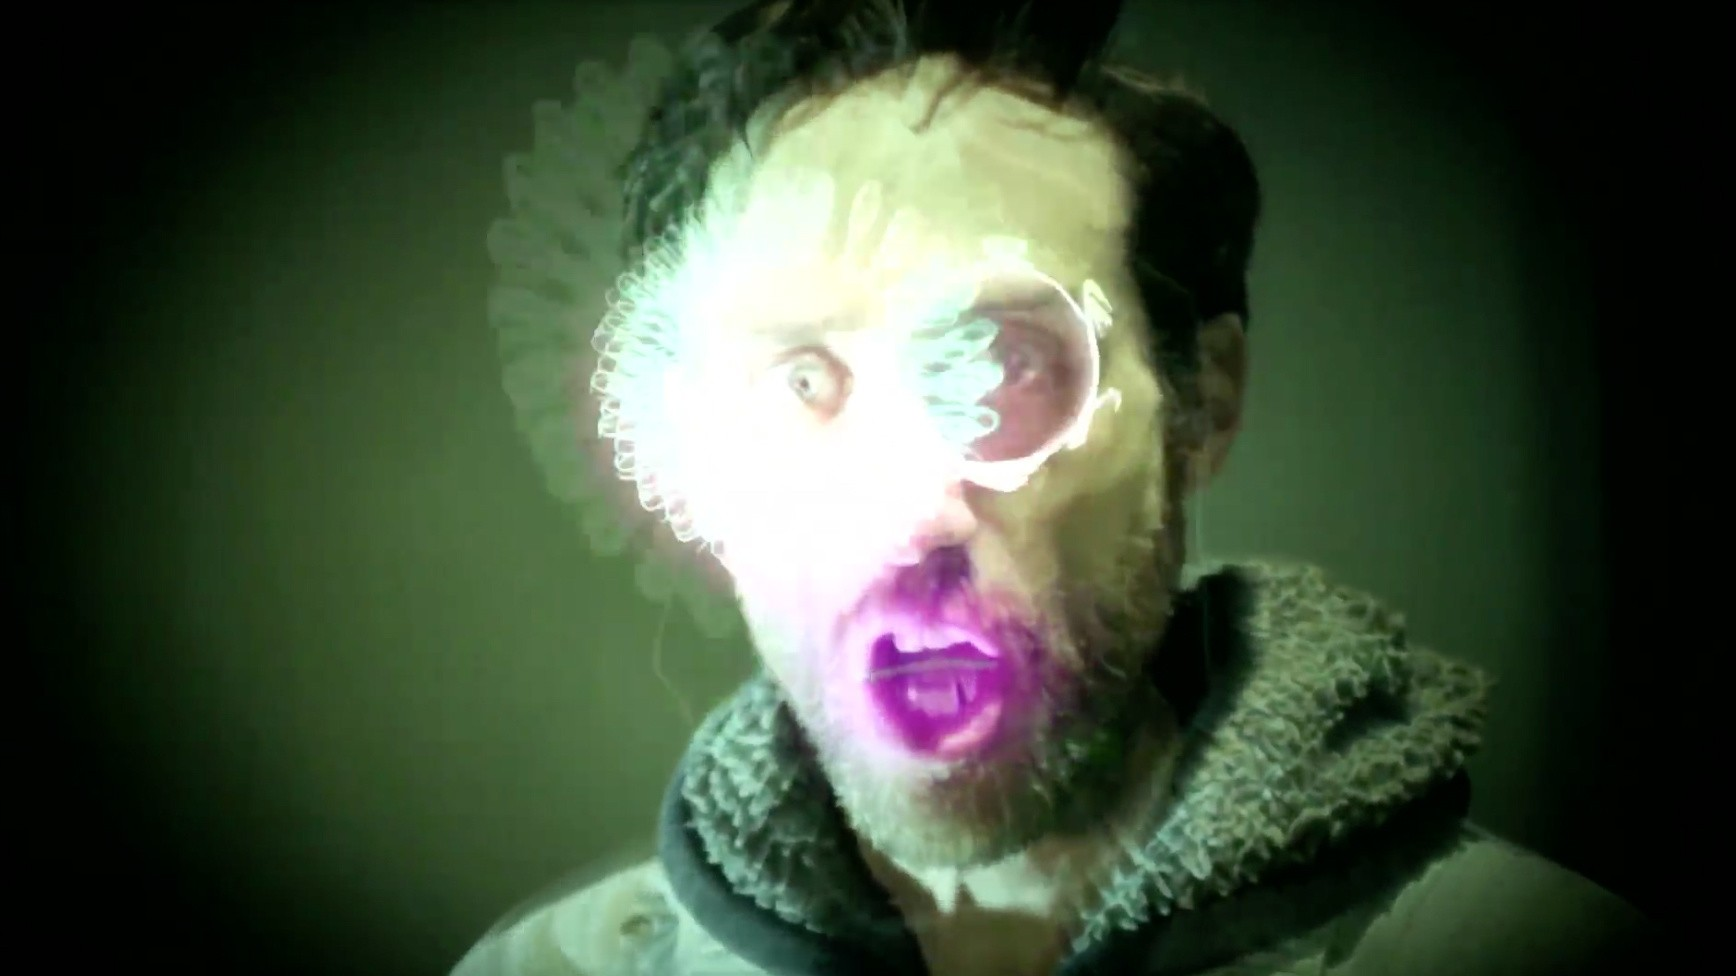 Beardyman Sent Us a Video Transmission From Another Galaxy